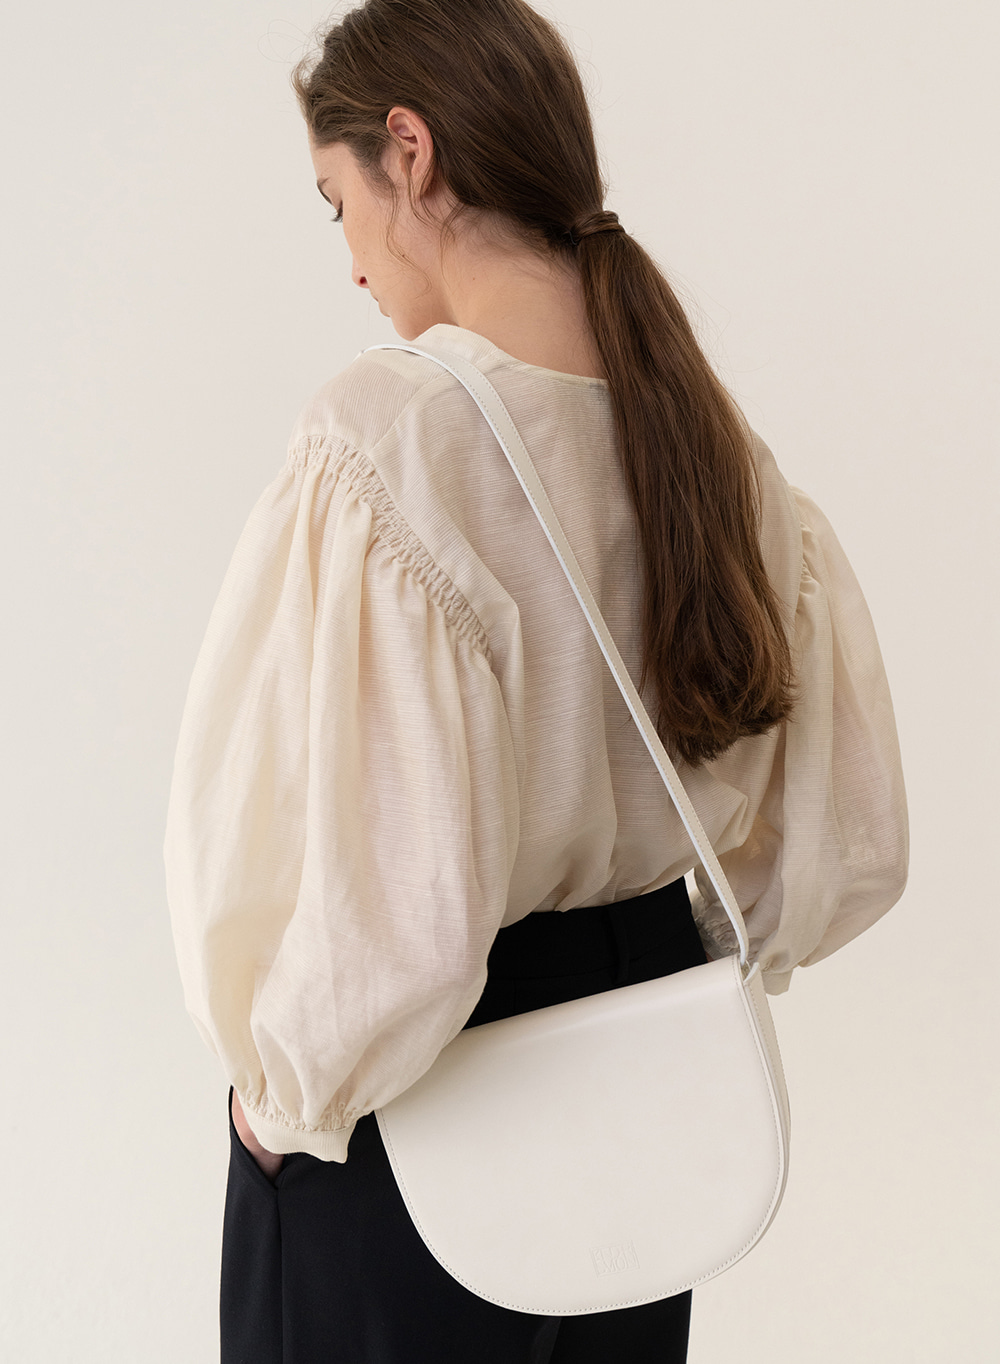 [ESSENTIAL] Tray Shoulder Bag Cream